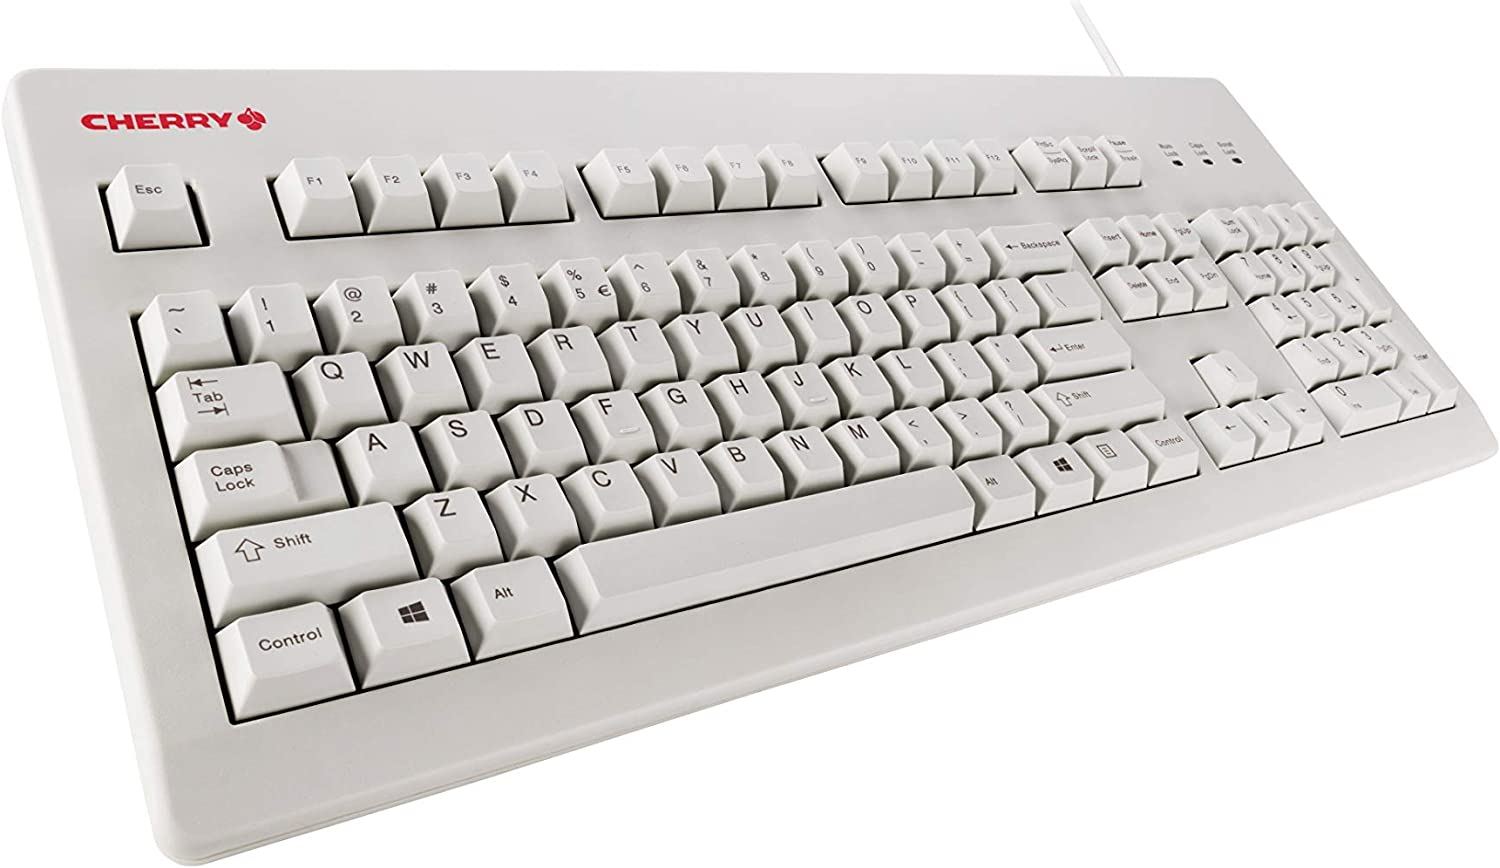 white Cherry mechanical keyboard at an angle